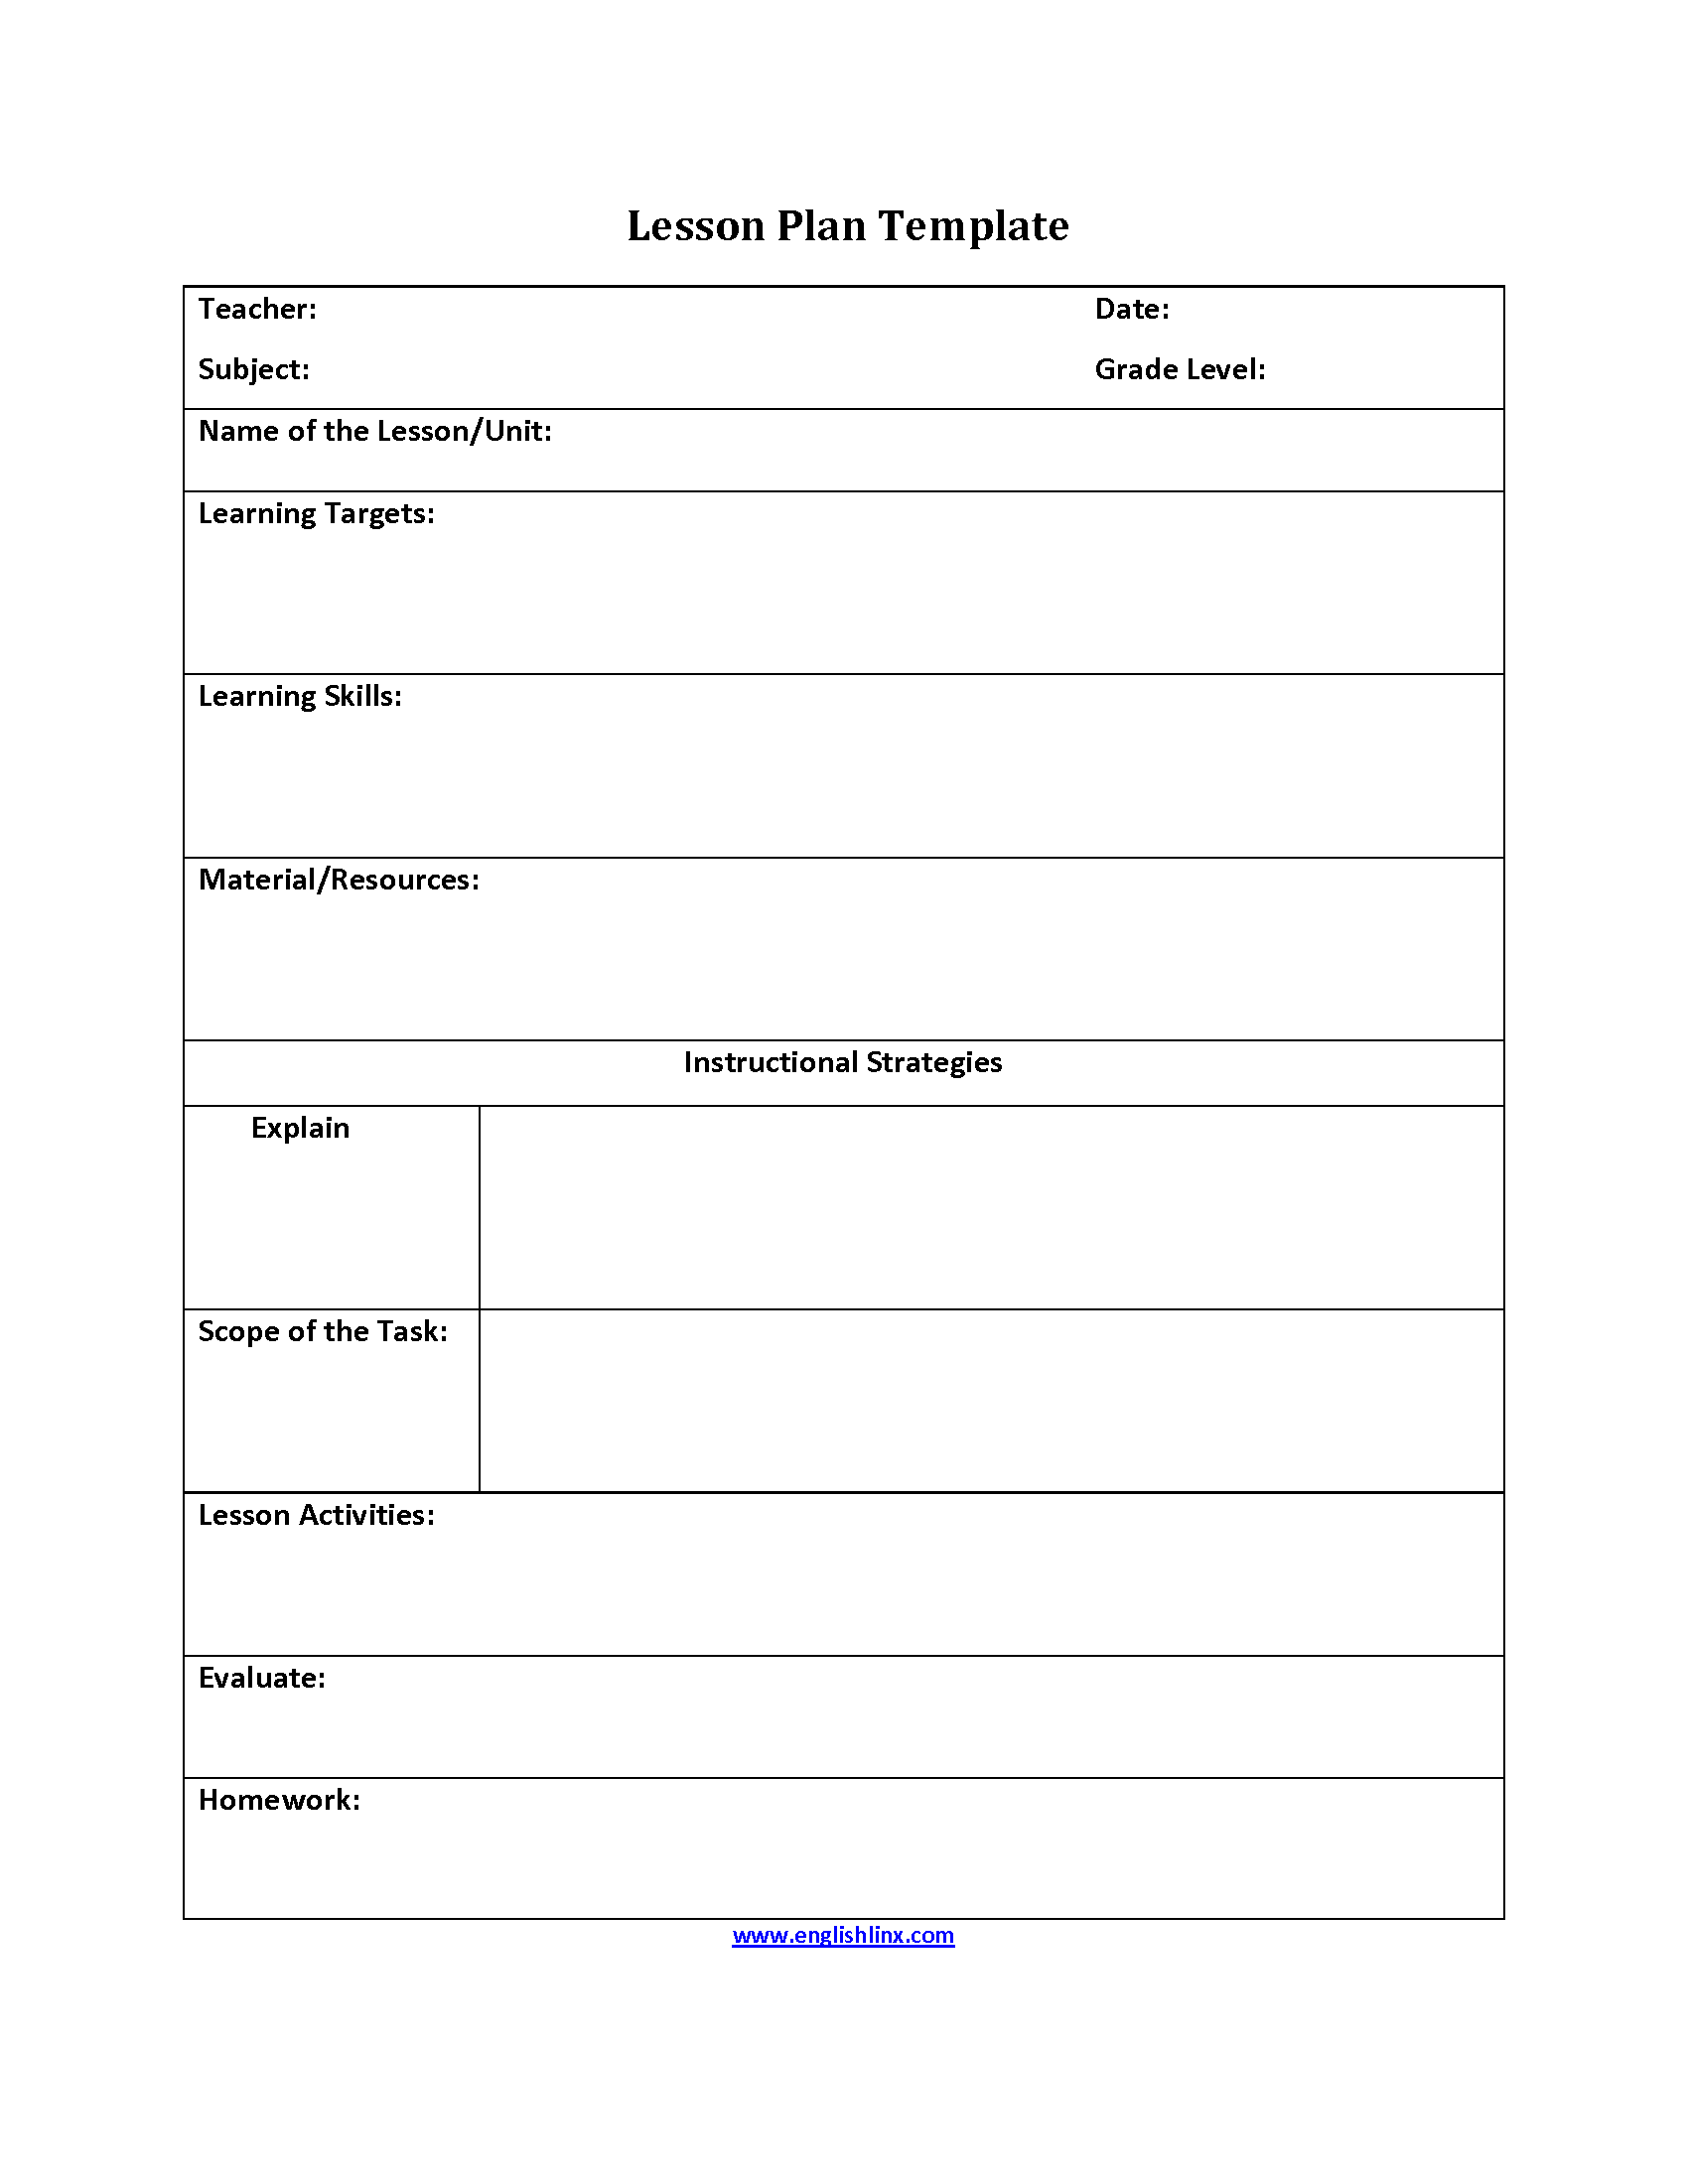 Englishlinx Lesson Plan Template